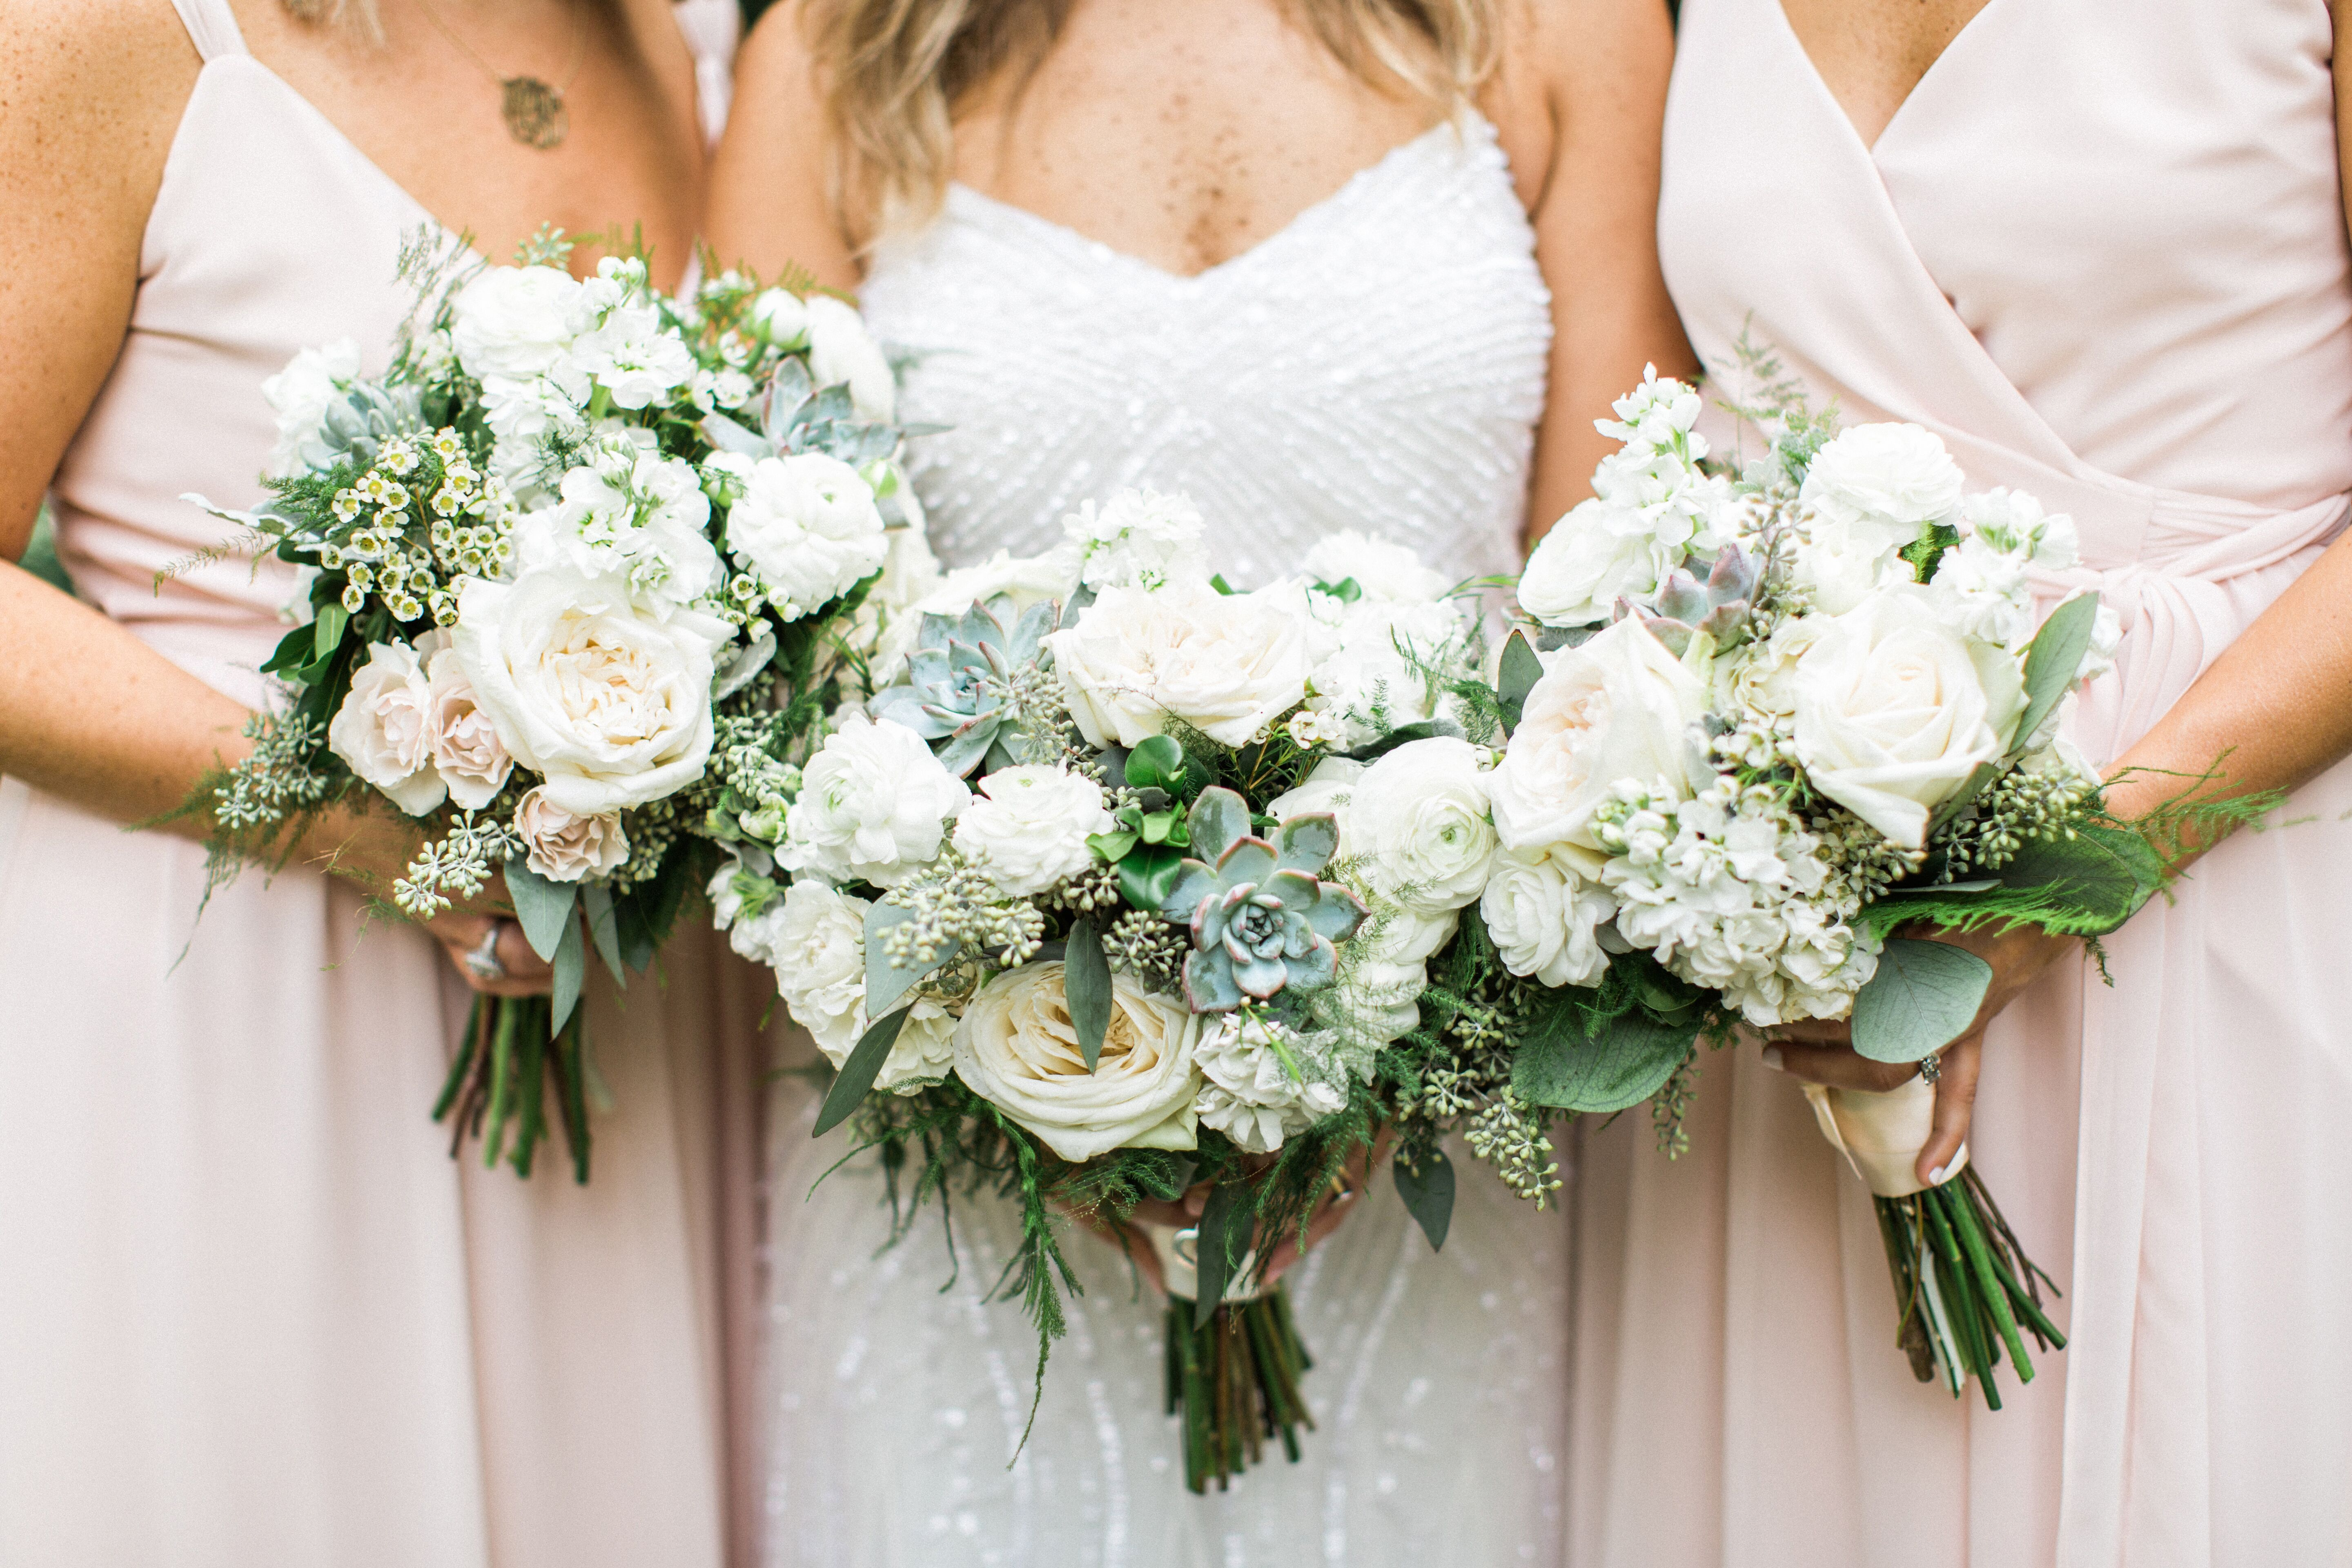 Bohemian Bouquets Of Greenery Succulent White Roses And Baby S Breath